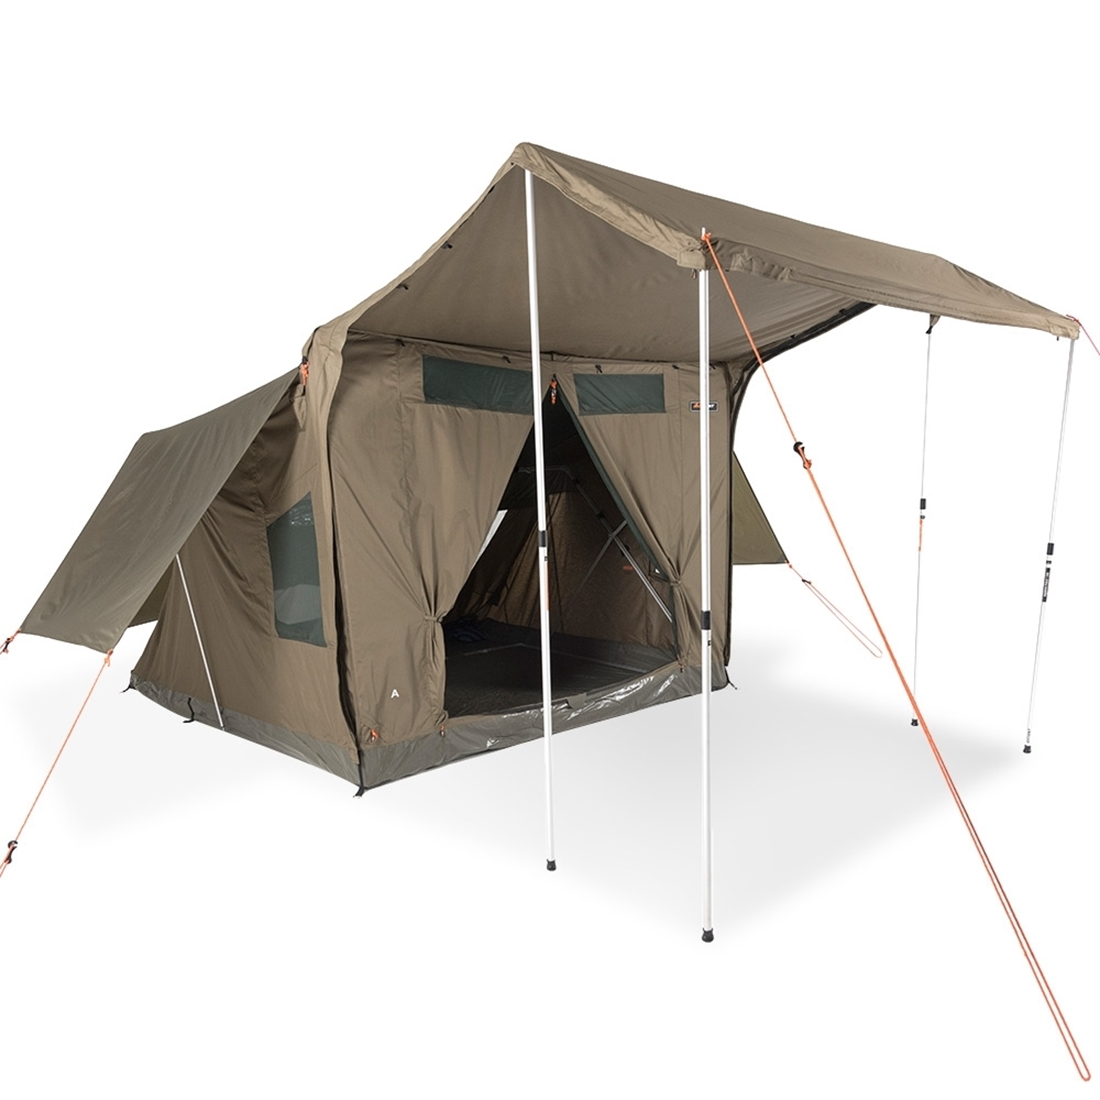 Oztent RV-5 Plus Canvas Touring Tent